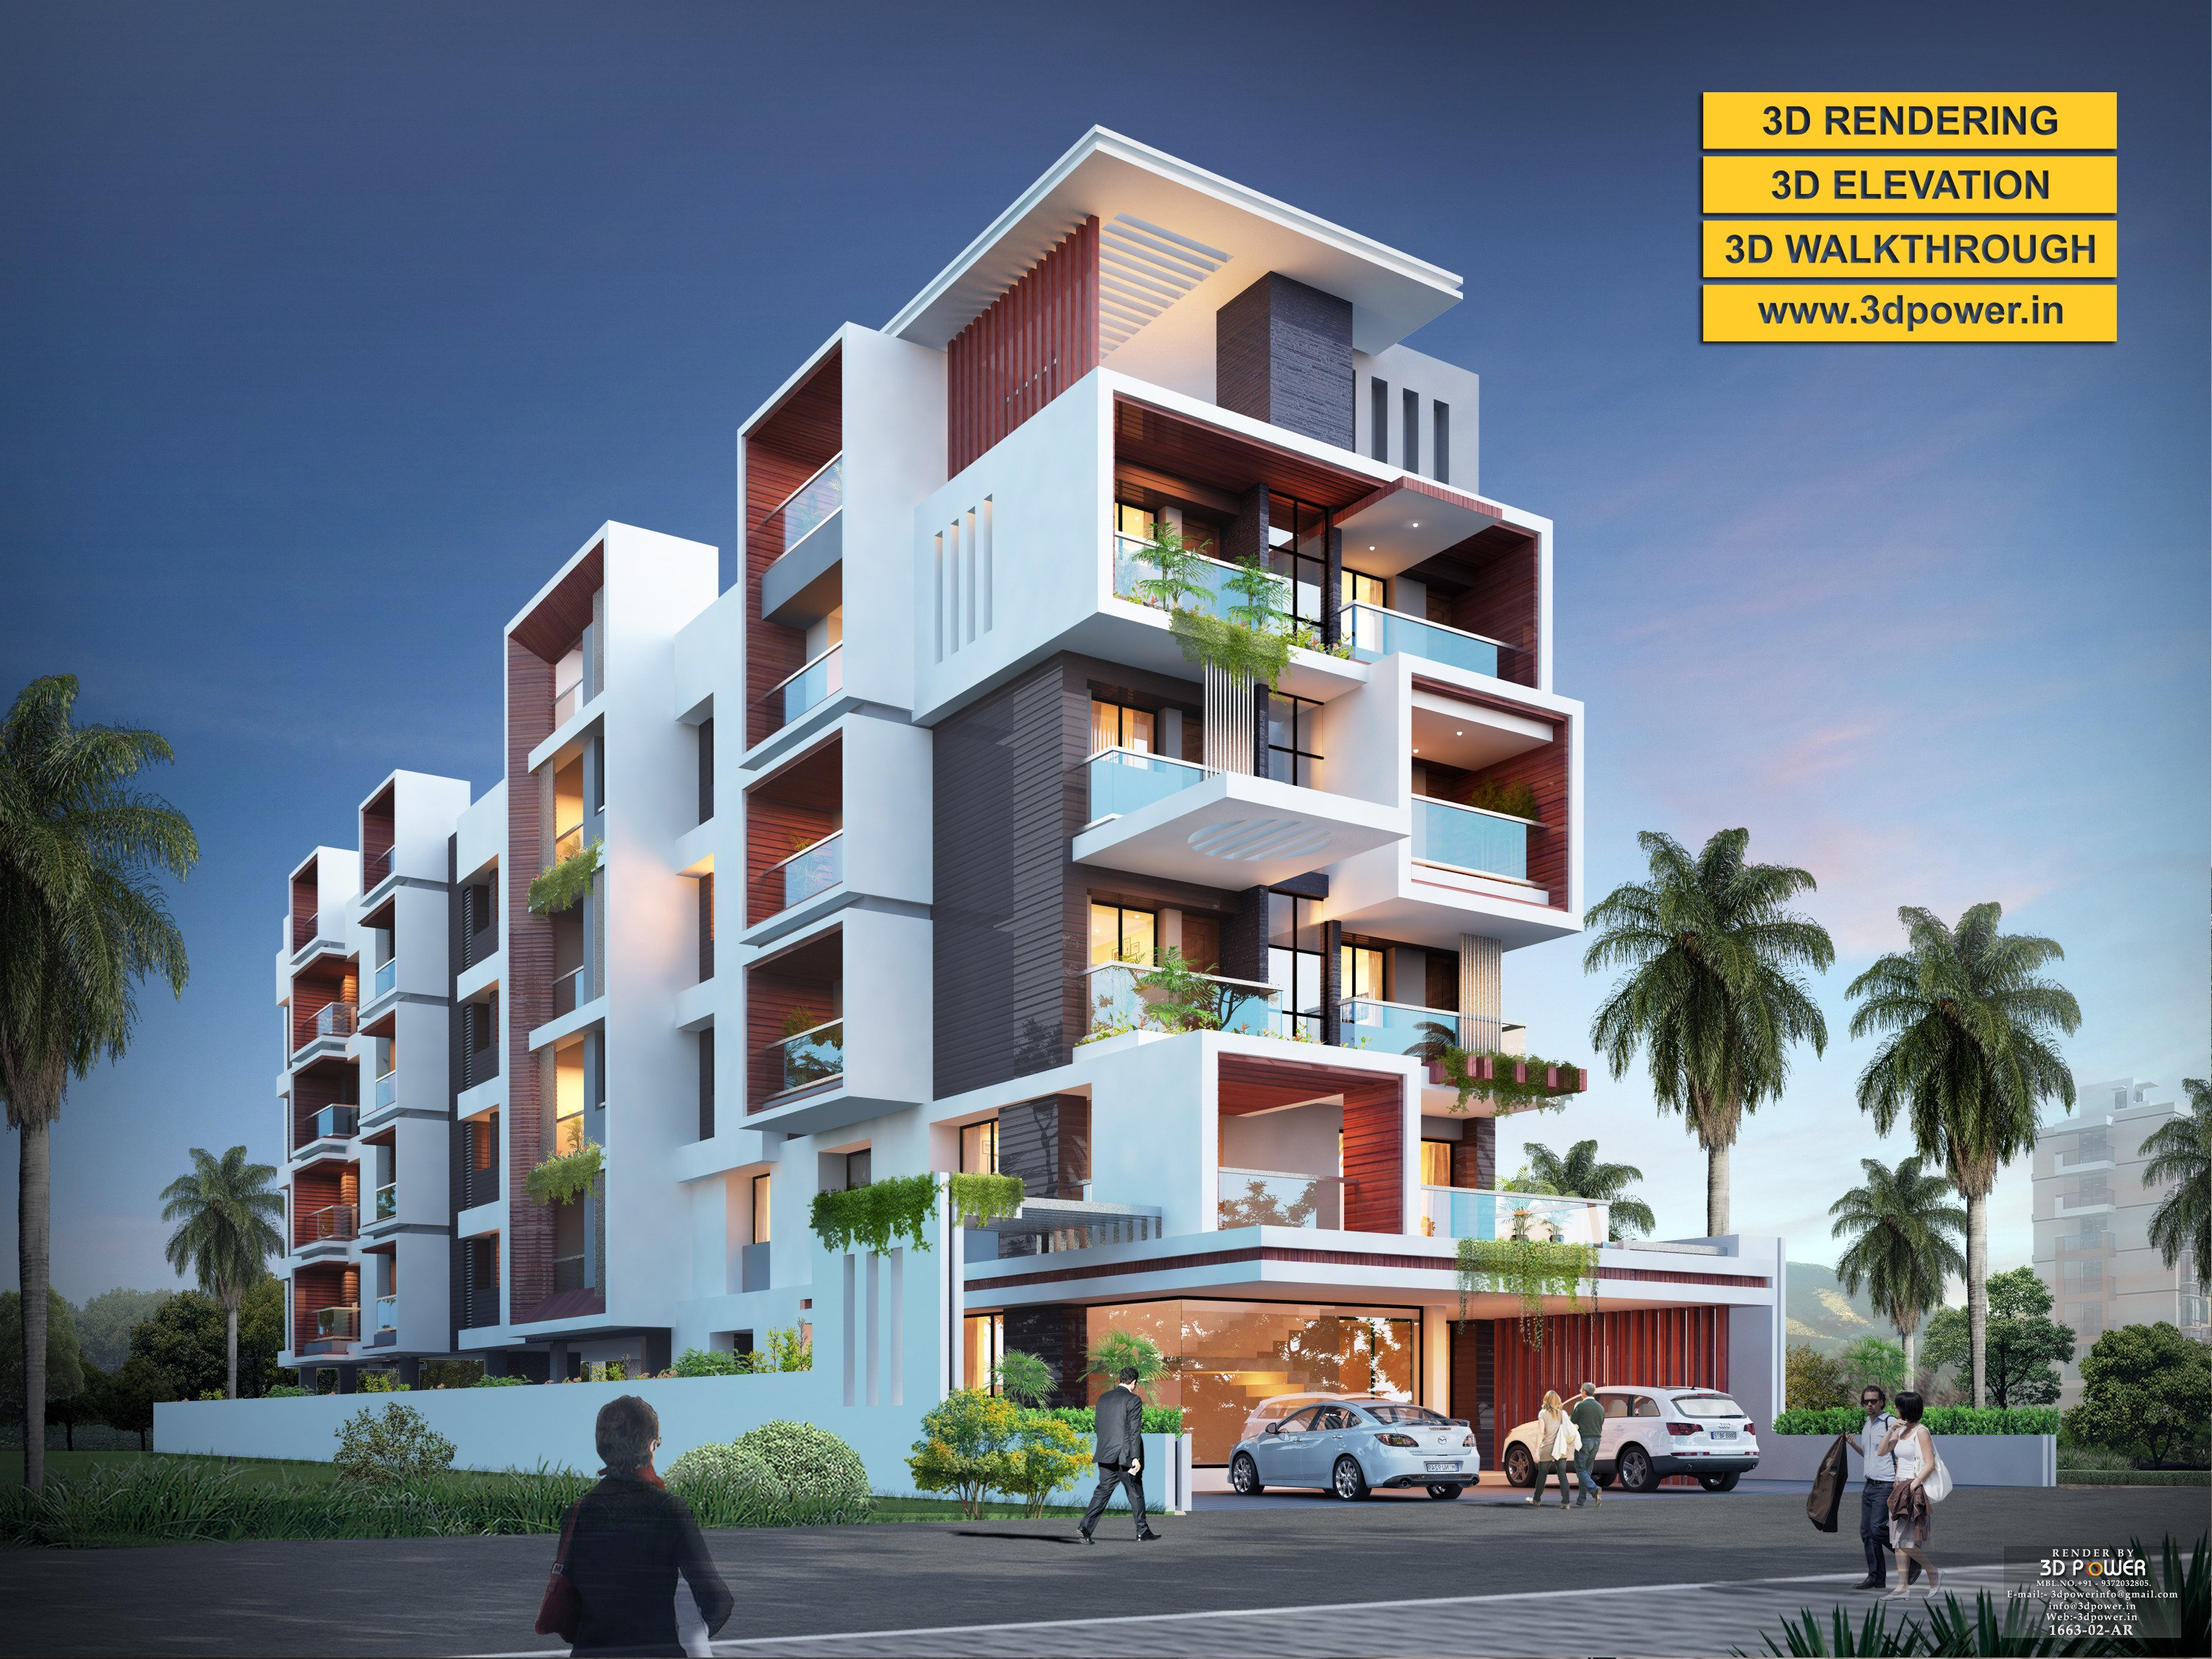 3d Ultramodern Apartment Exterior Day Rendering And Elevation Design By 3d Power Threed Power Visualization Rahul